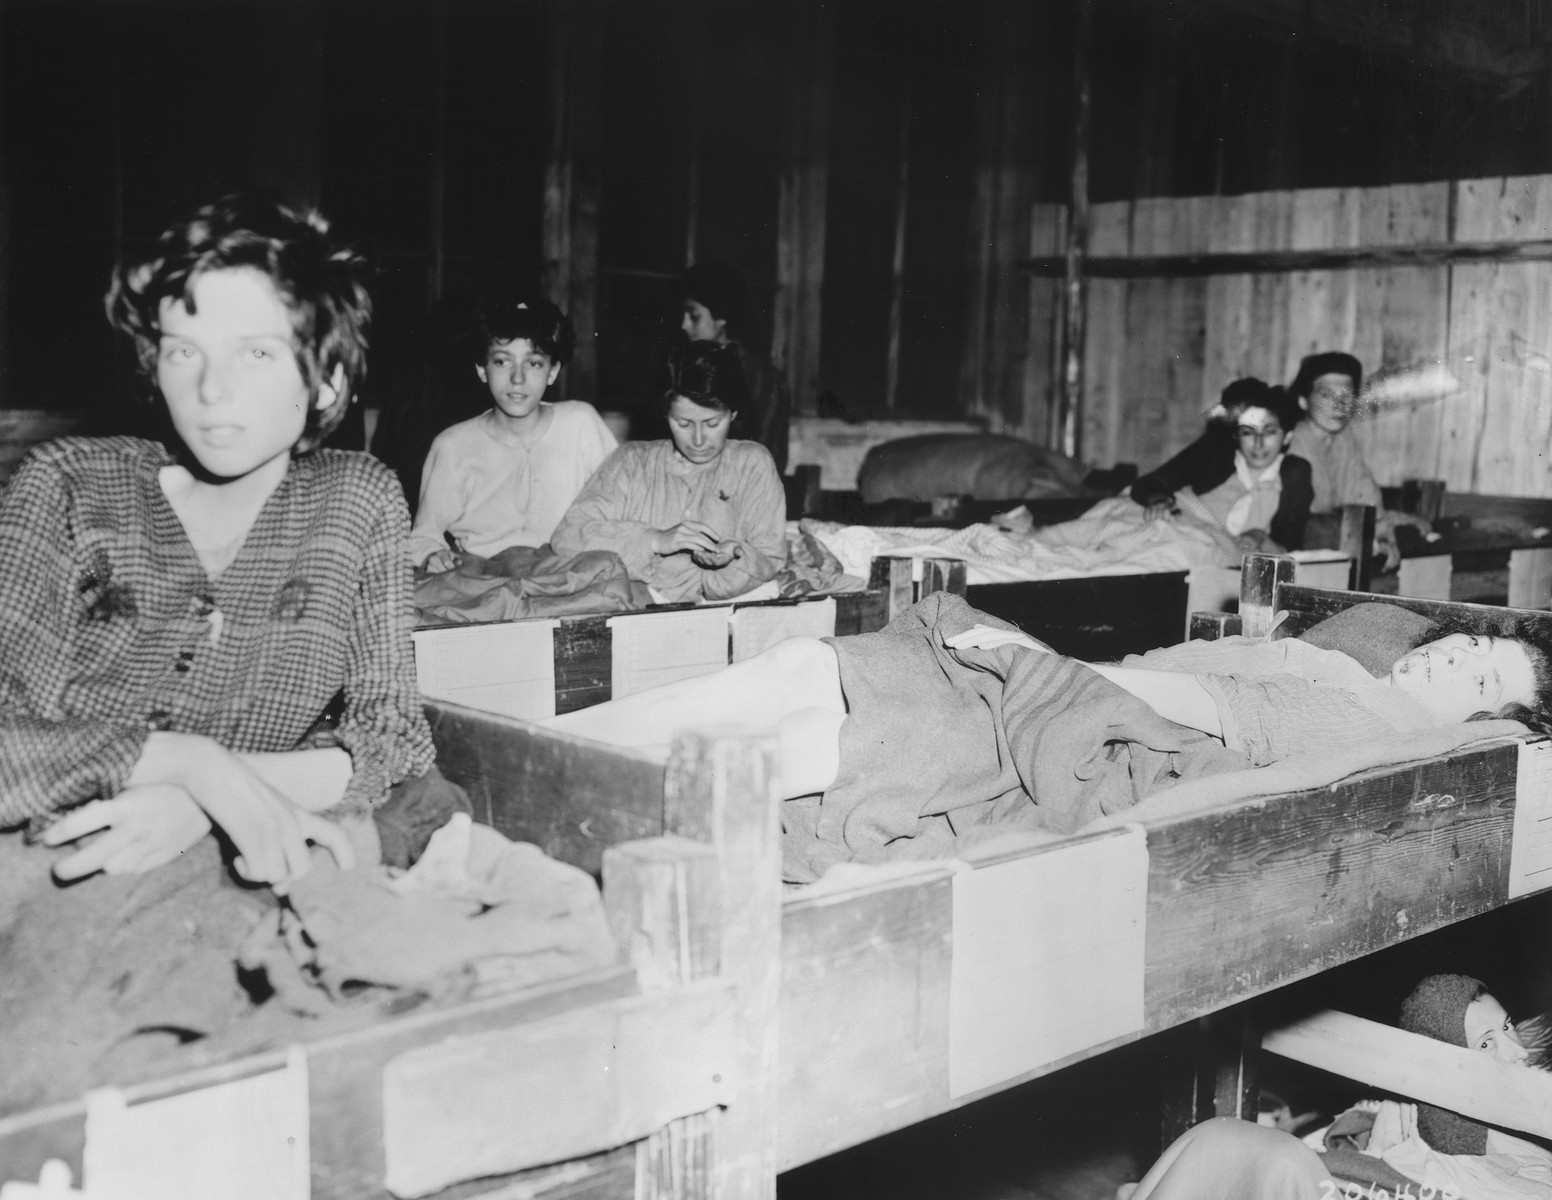 Female survivors of the Mauthausen concentration camp lie in wooden bunks in the hospital barracks.